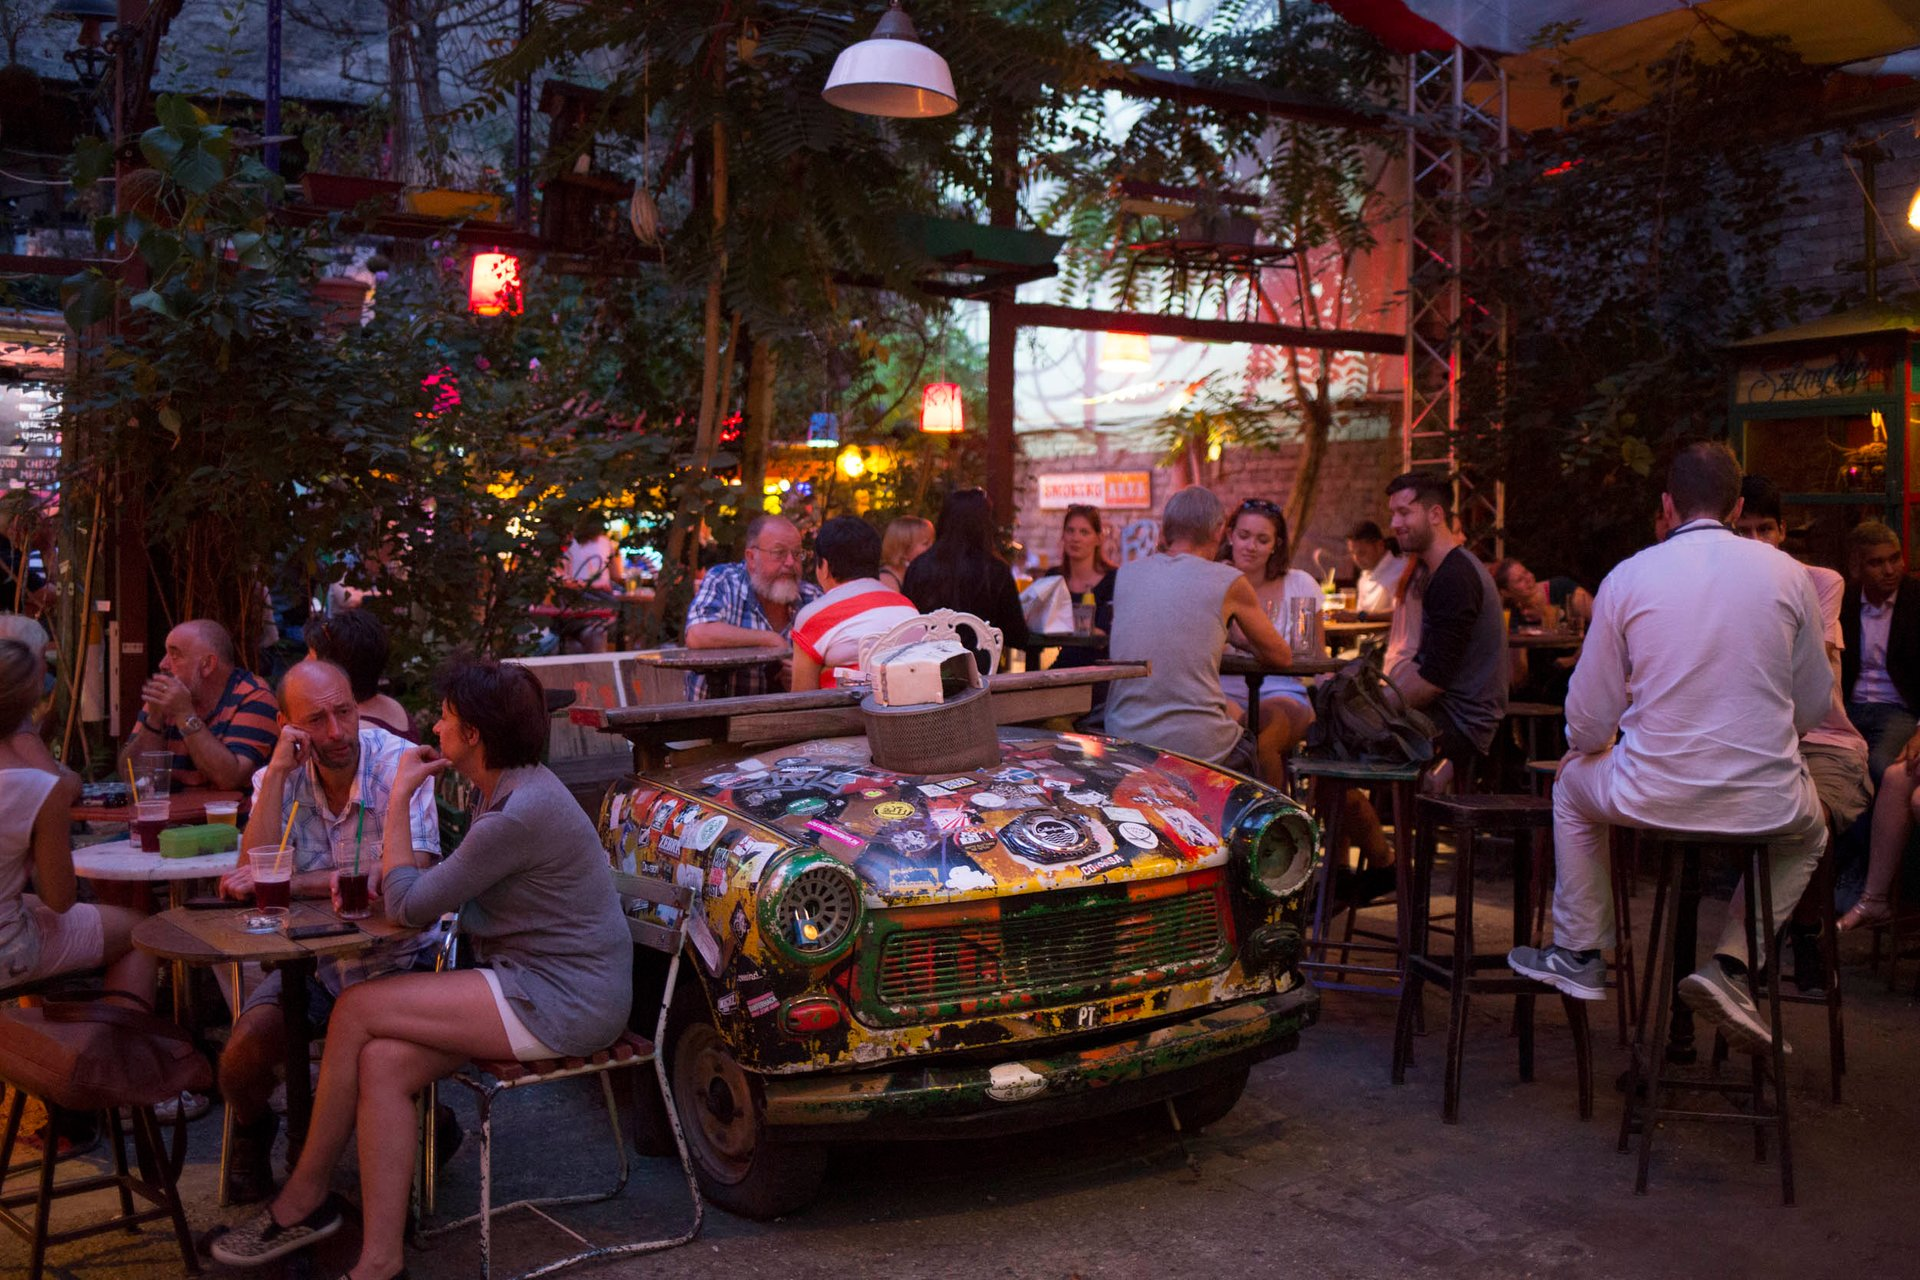 Szimpla Kert by night 2019